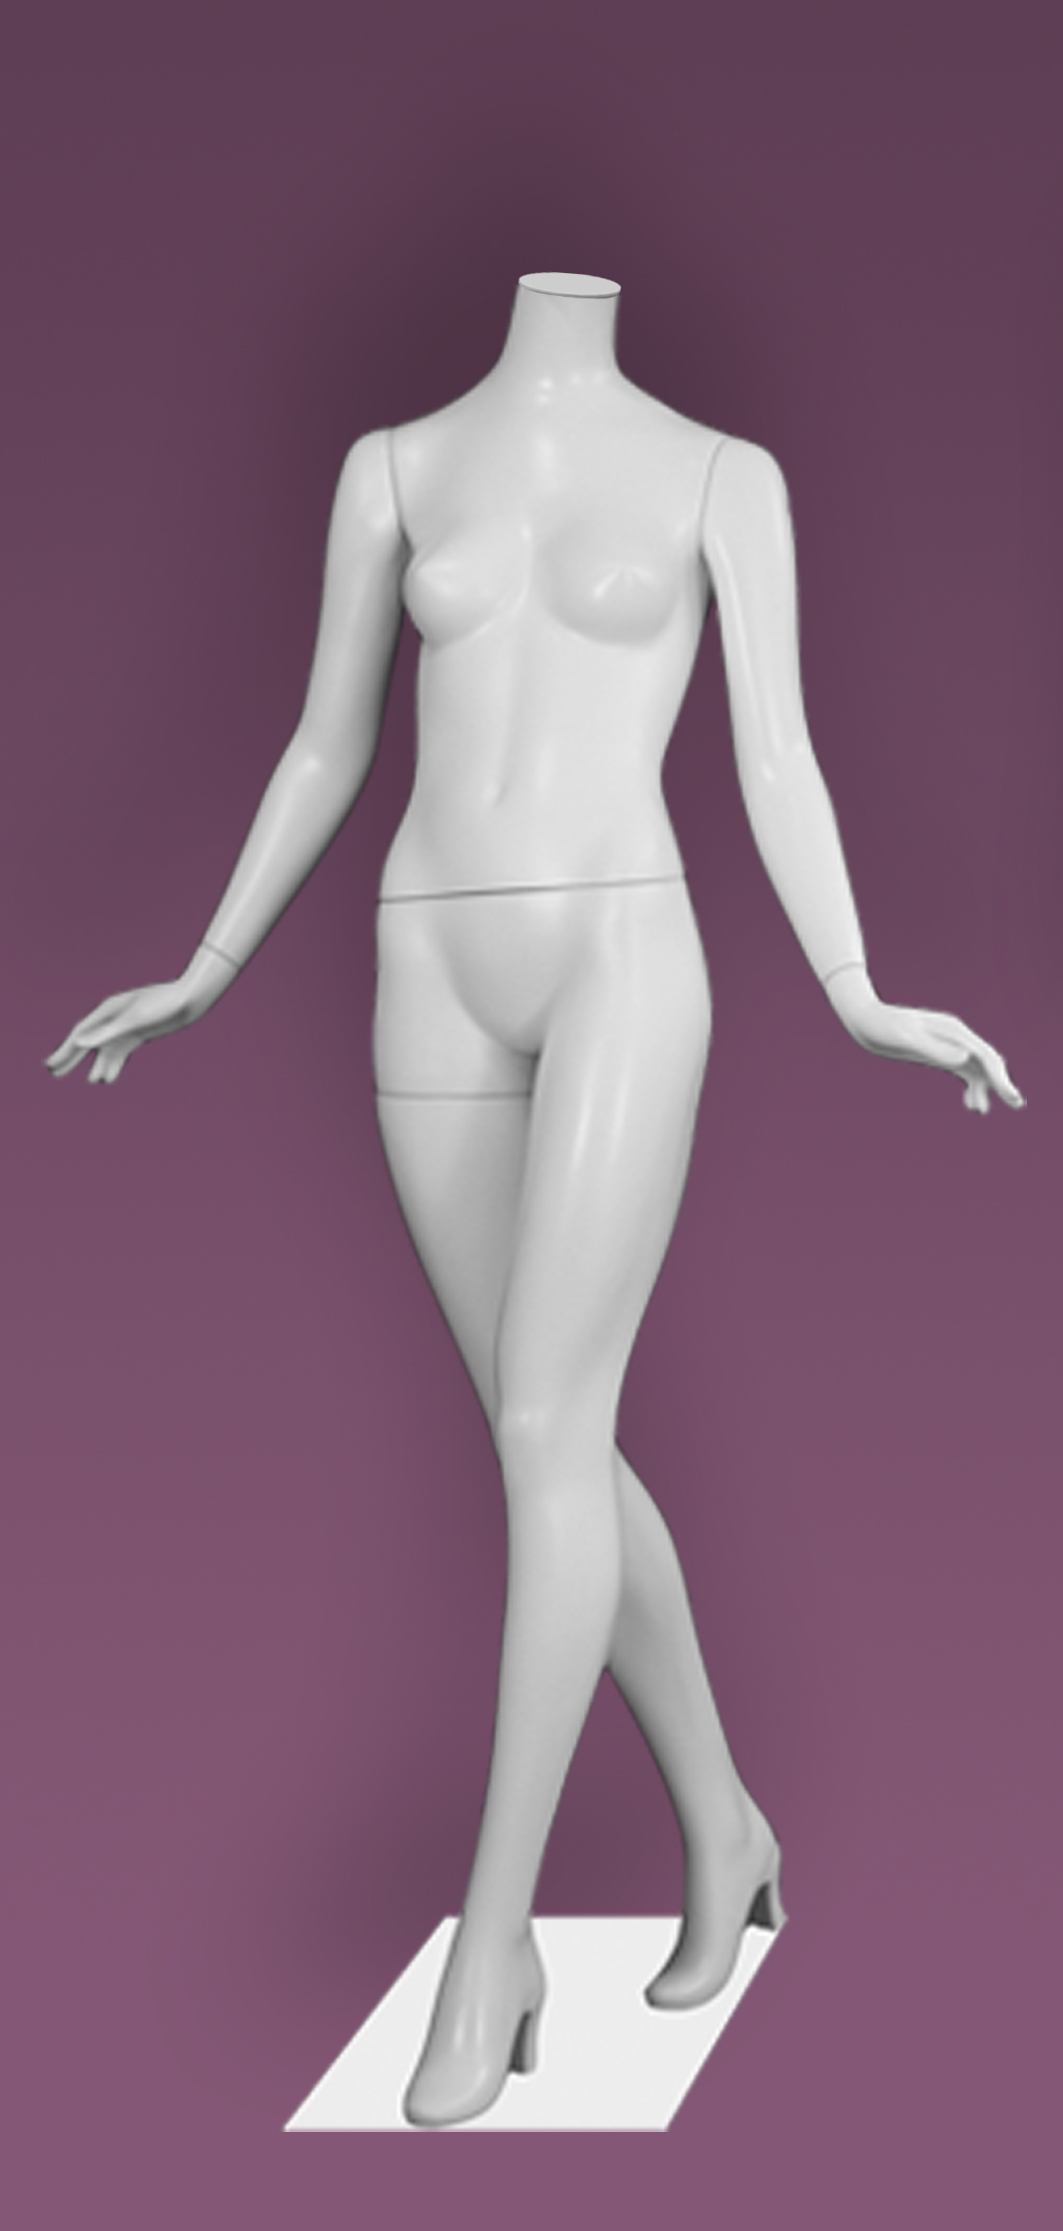 Female mannequins of the Inspiration 39 series